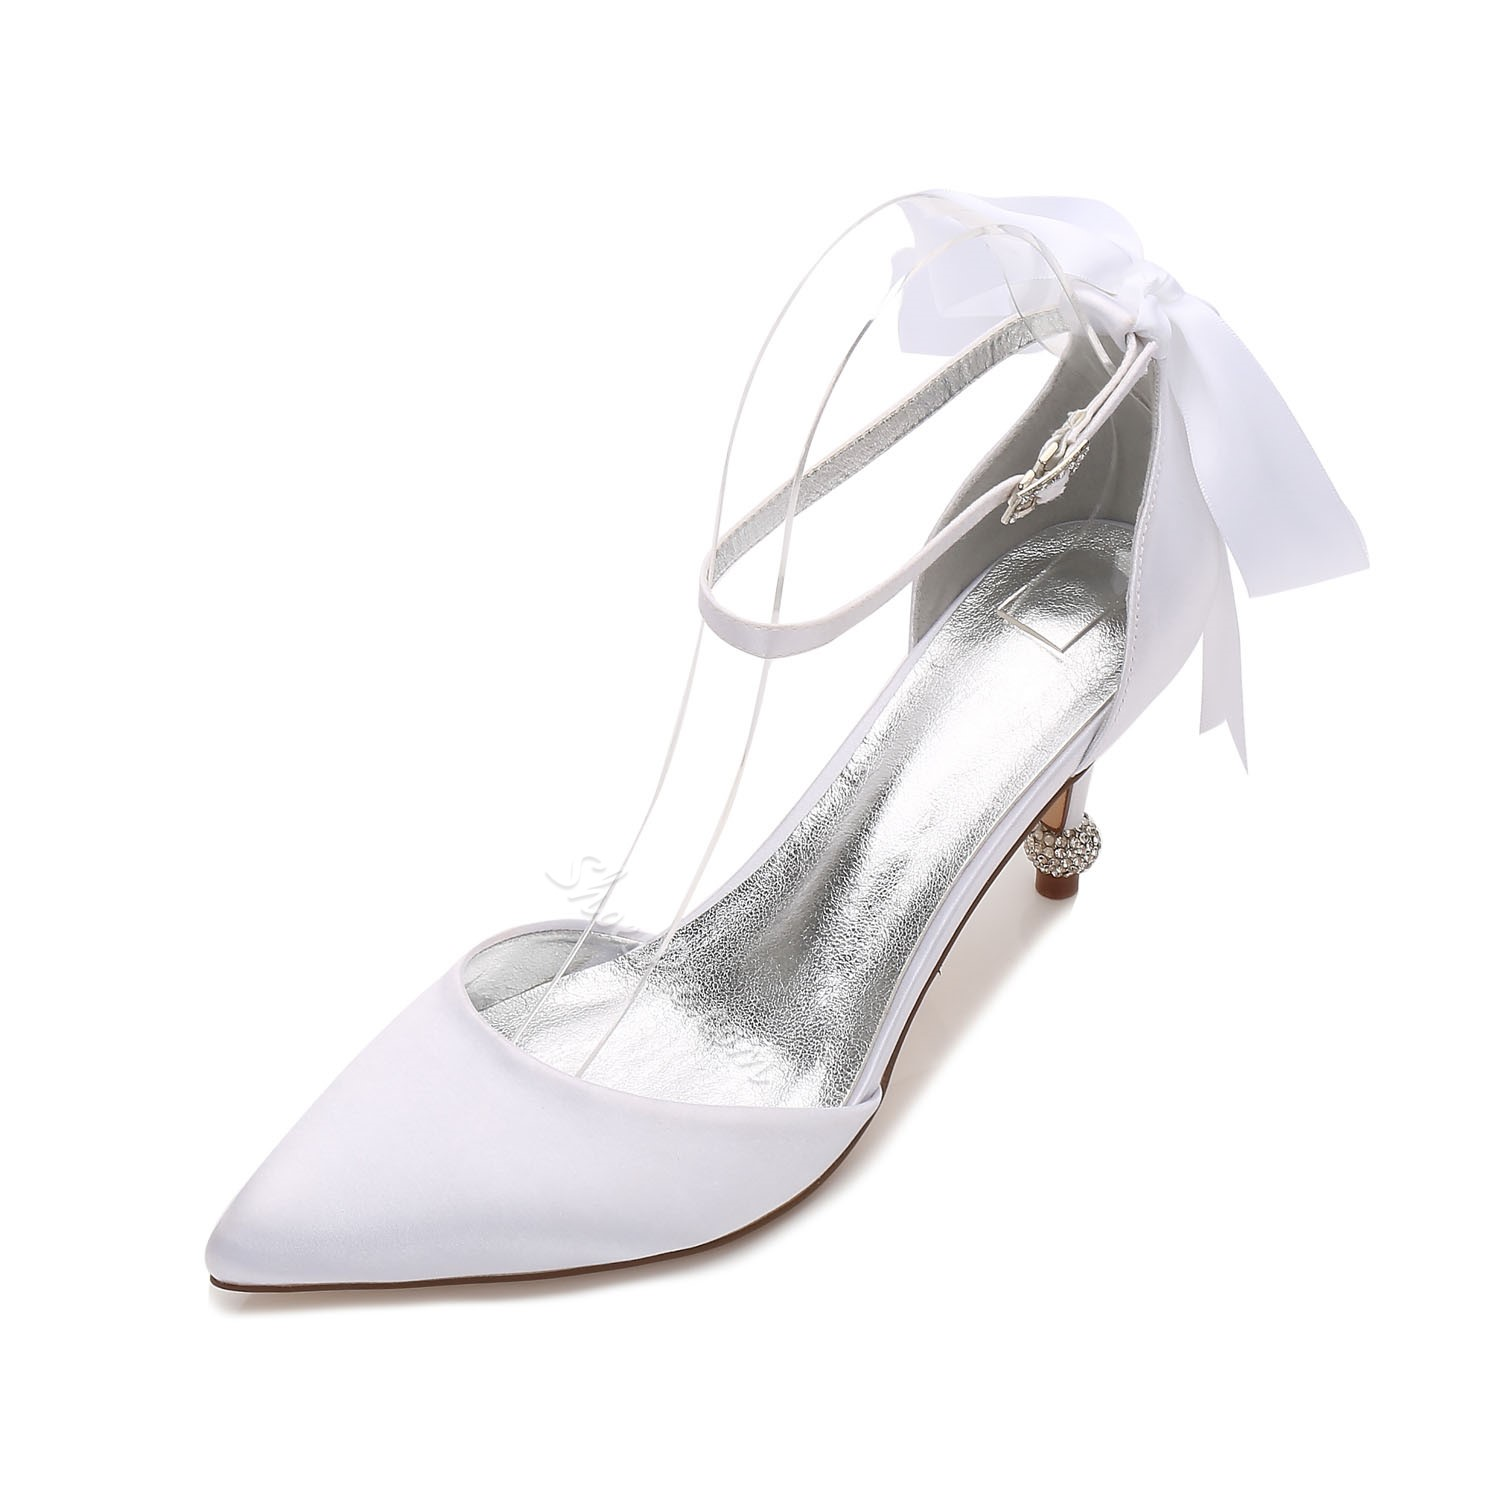 Shoespie Bow Line-Style Buckle Bridal Shoes